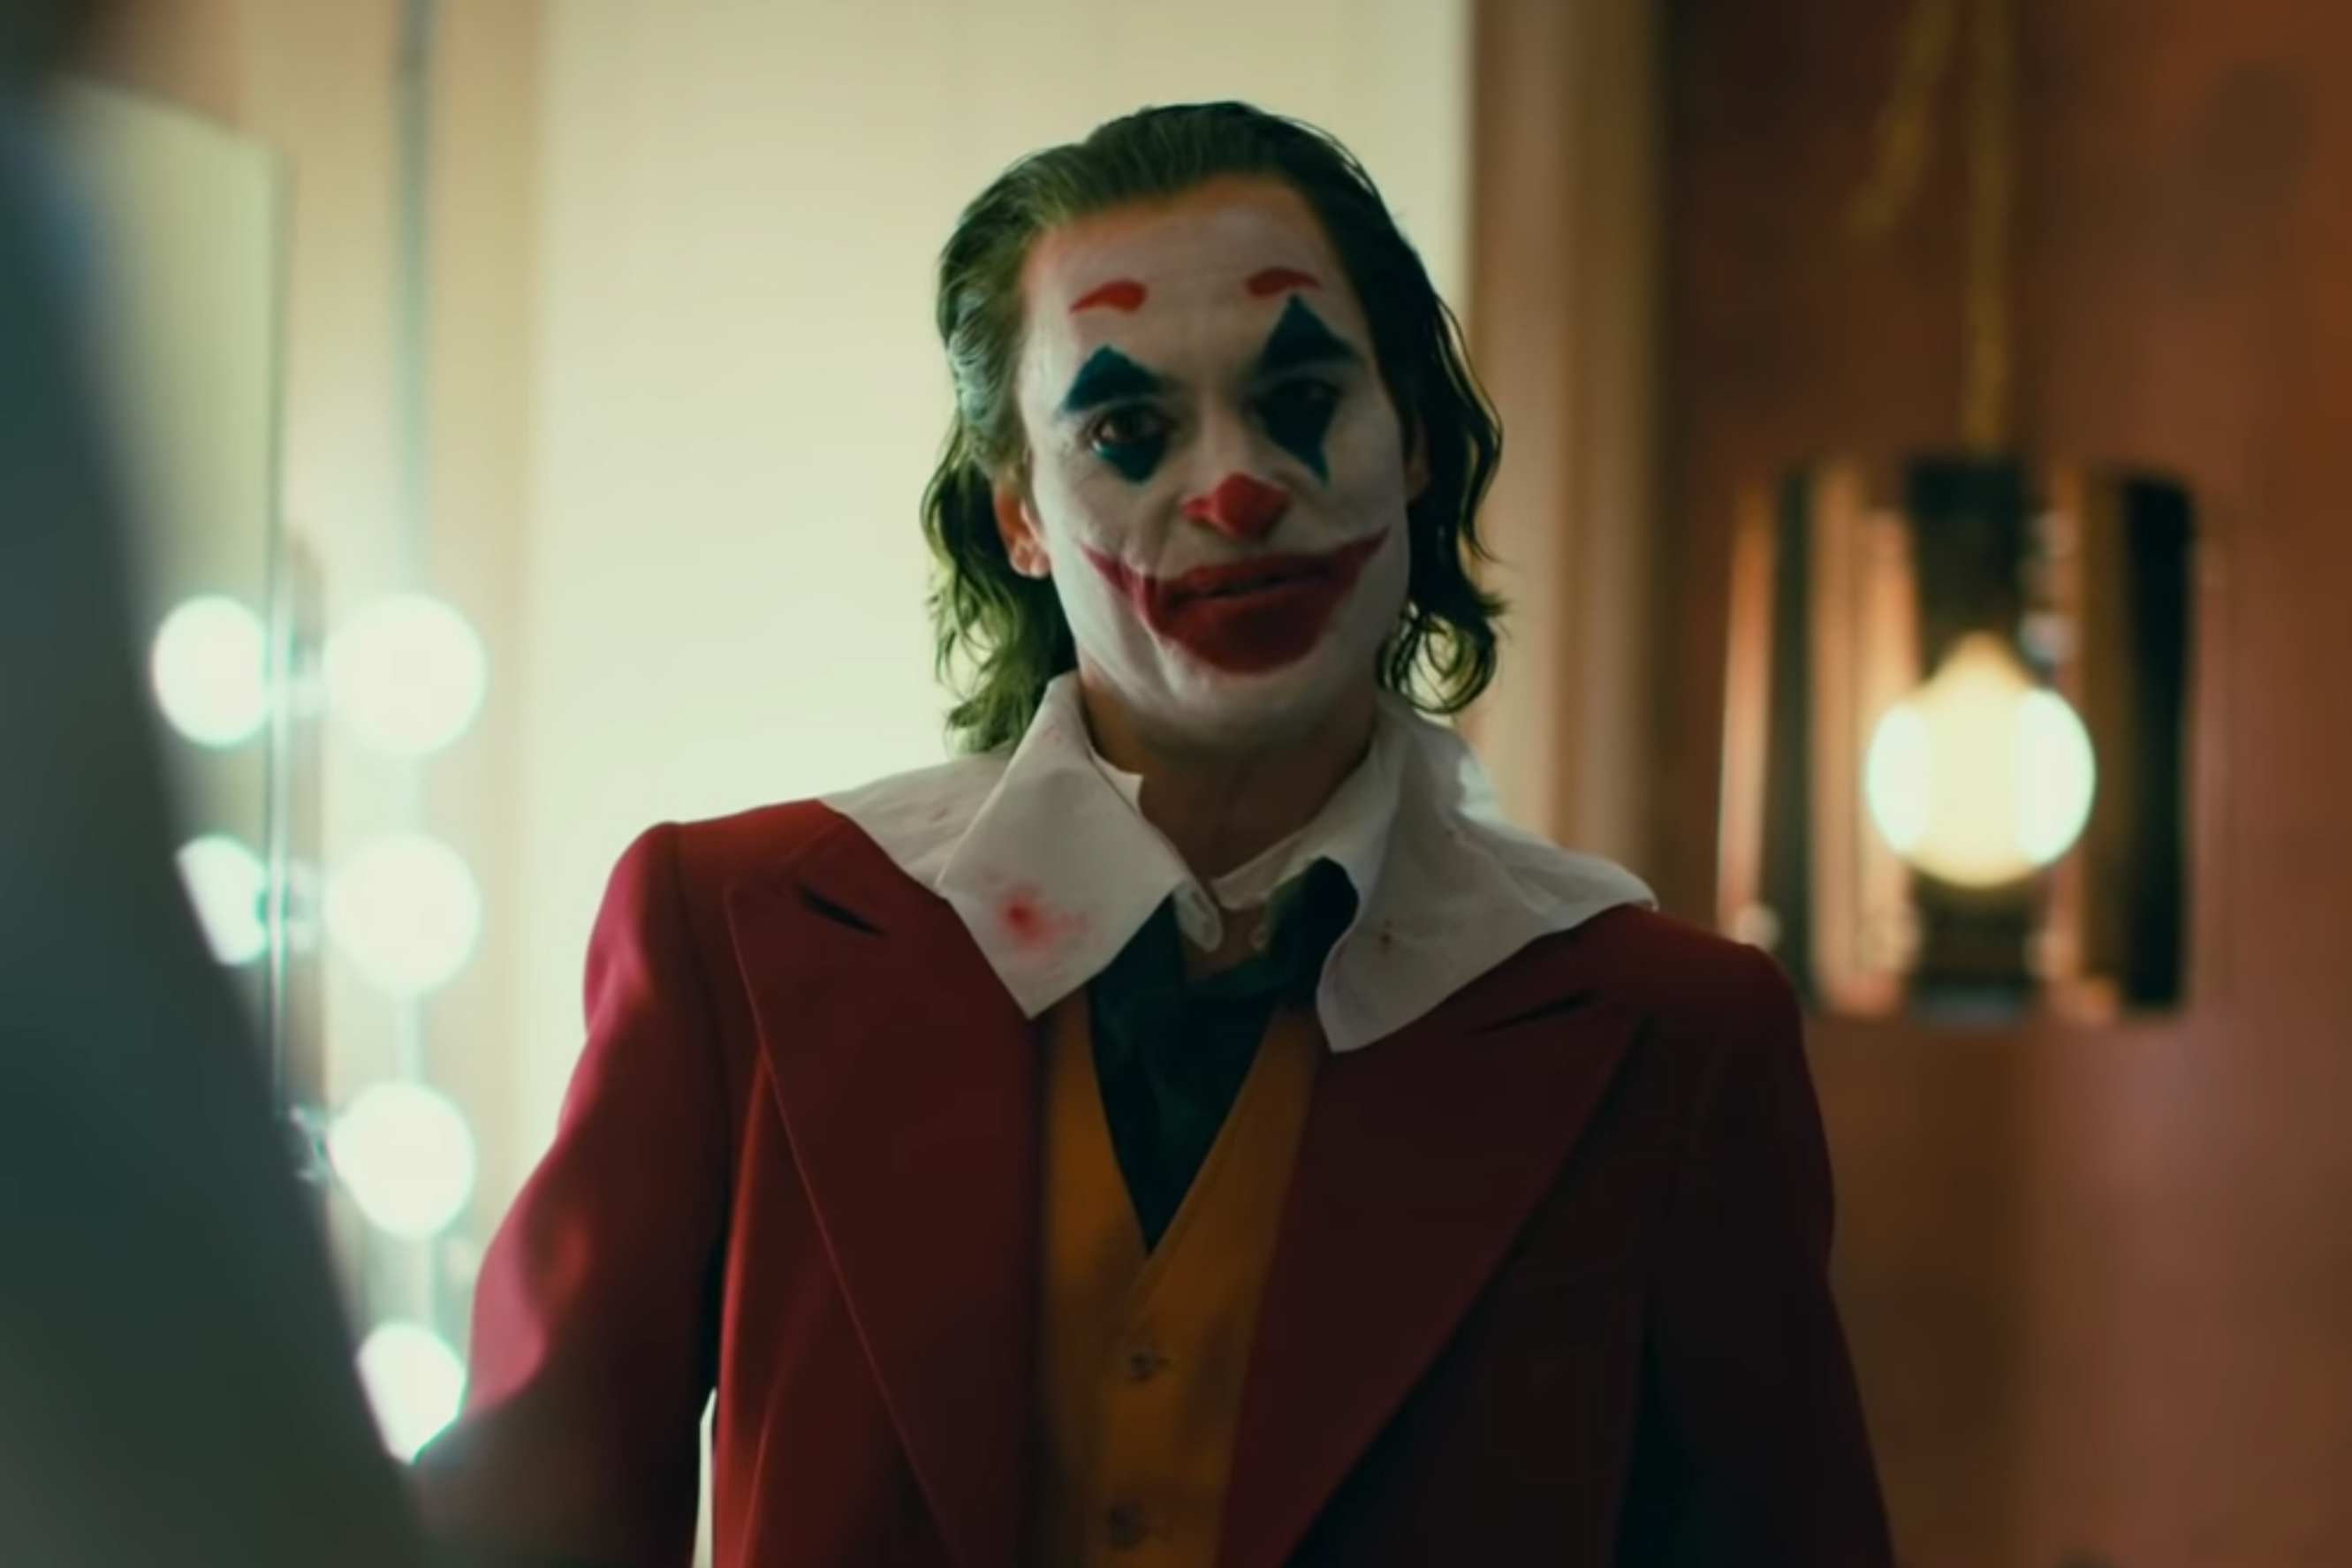 Brands missing from marketing of 'Joker'